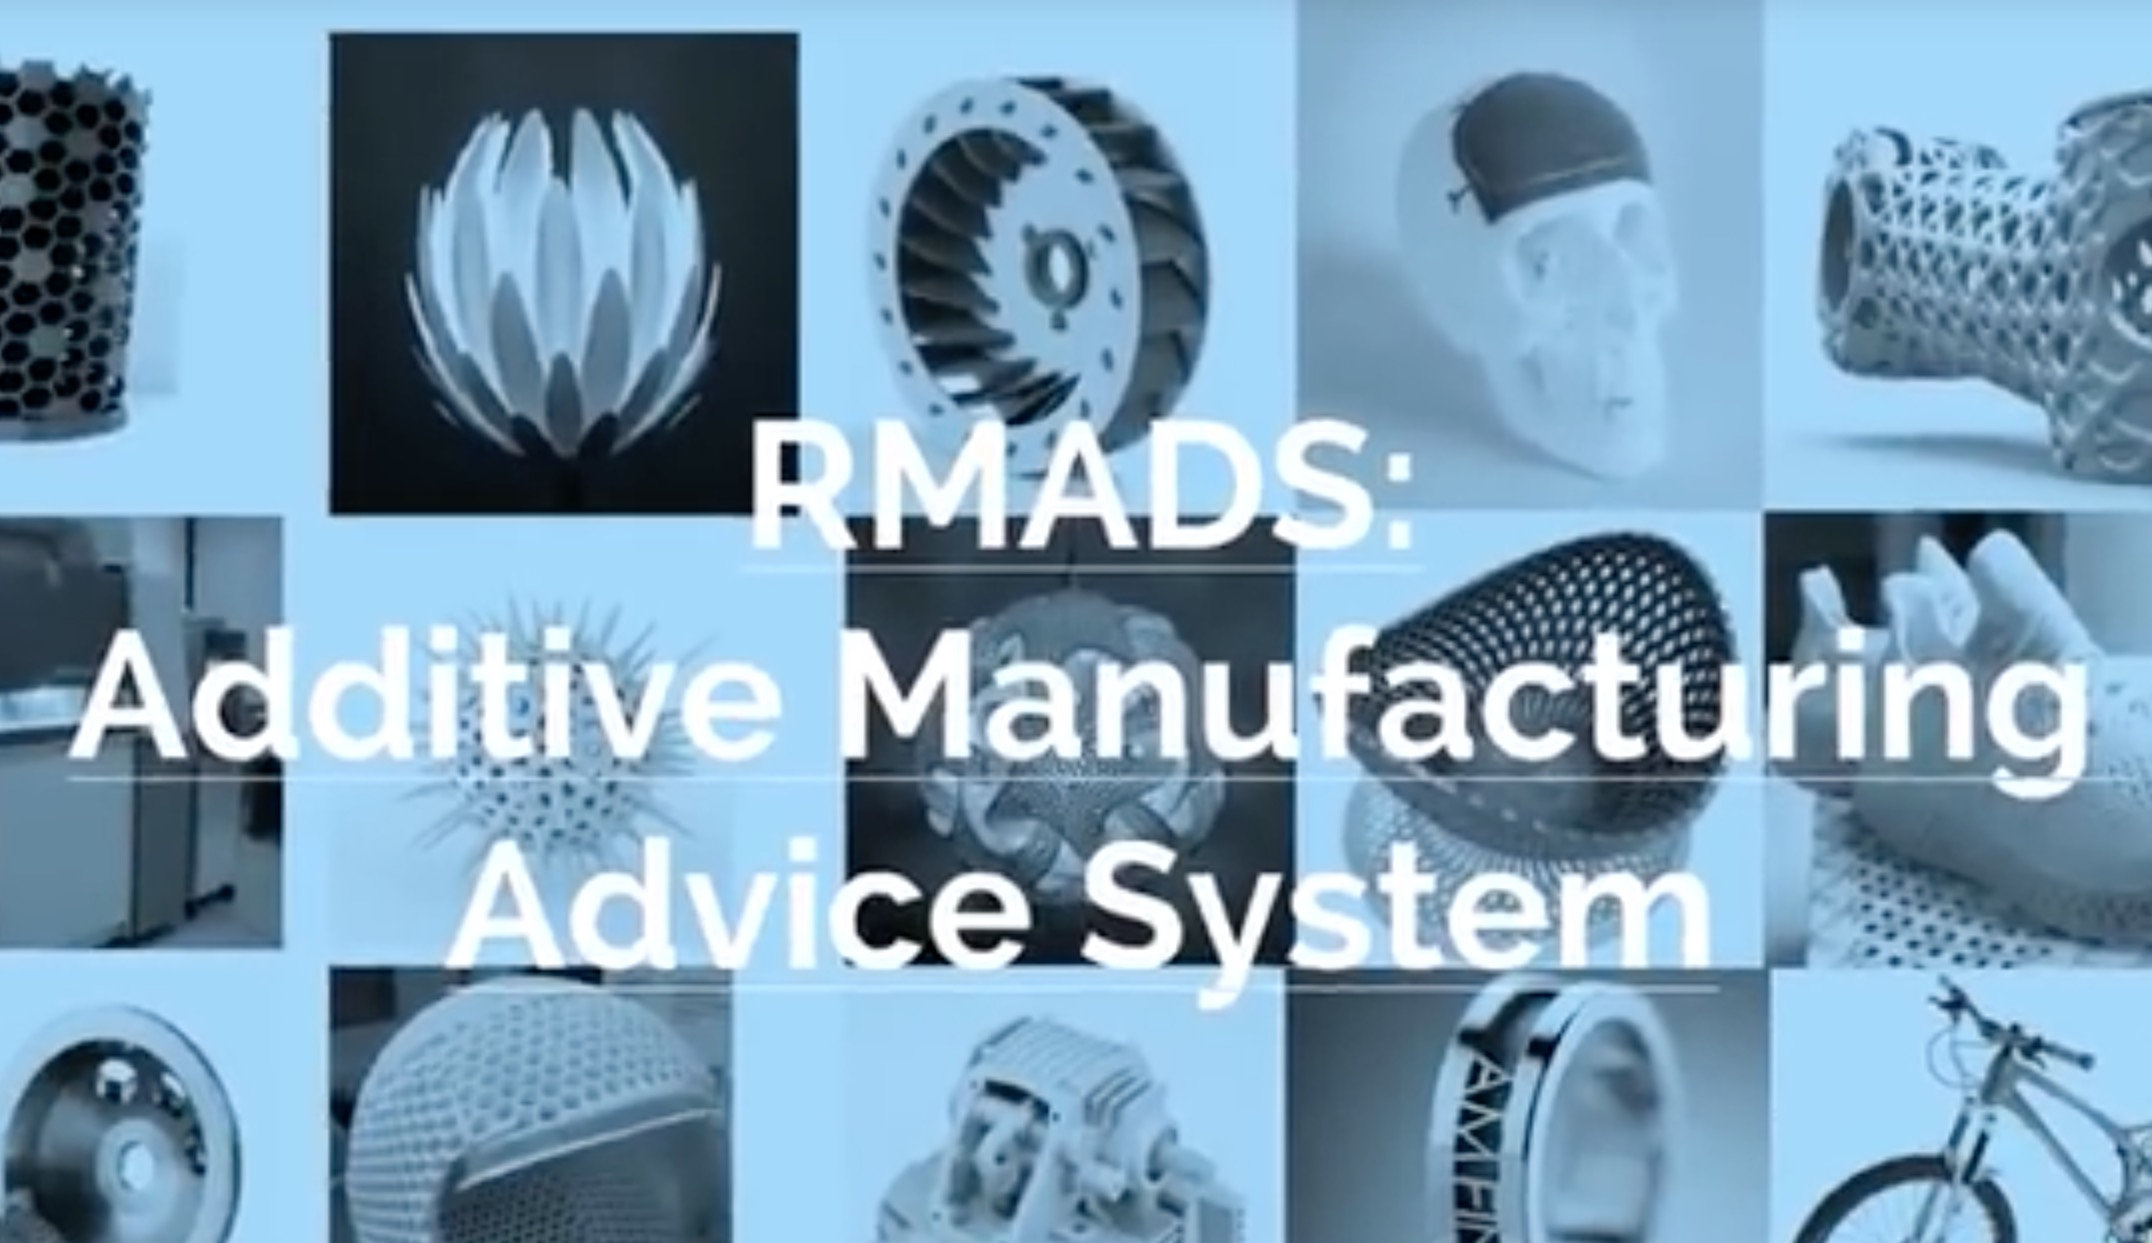 3D Print Community: The RMADS Rapid Manufacturing Advice System